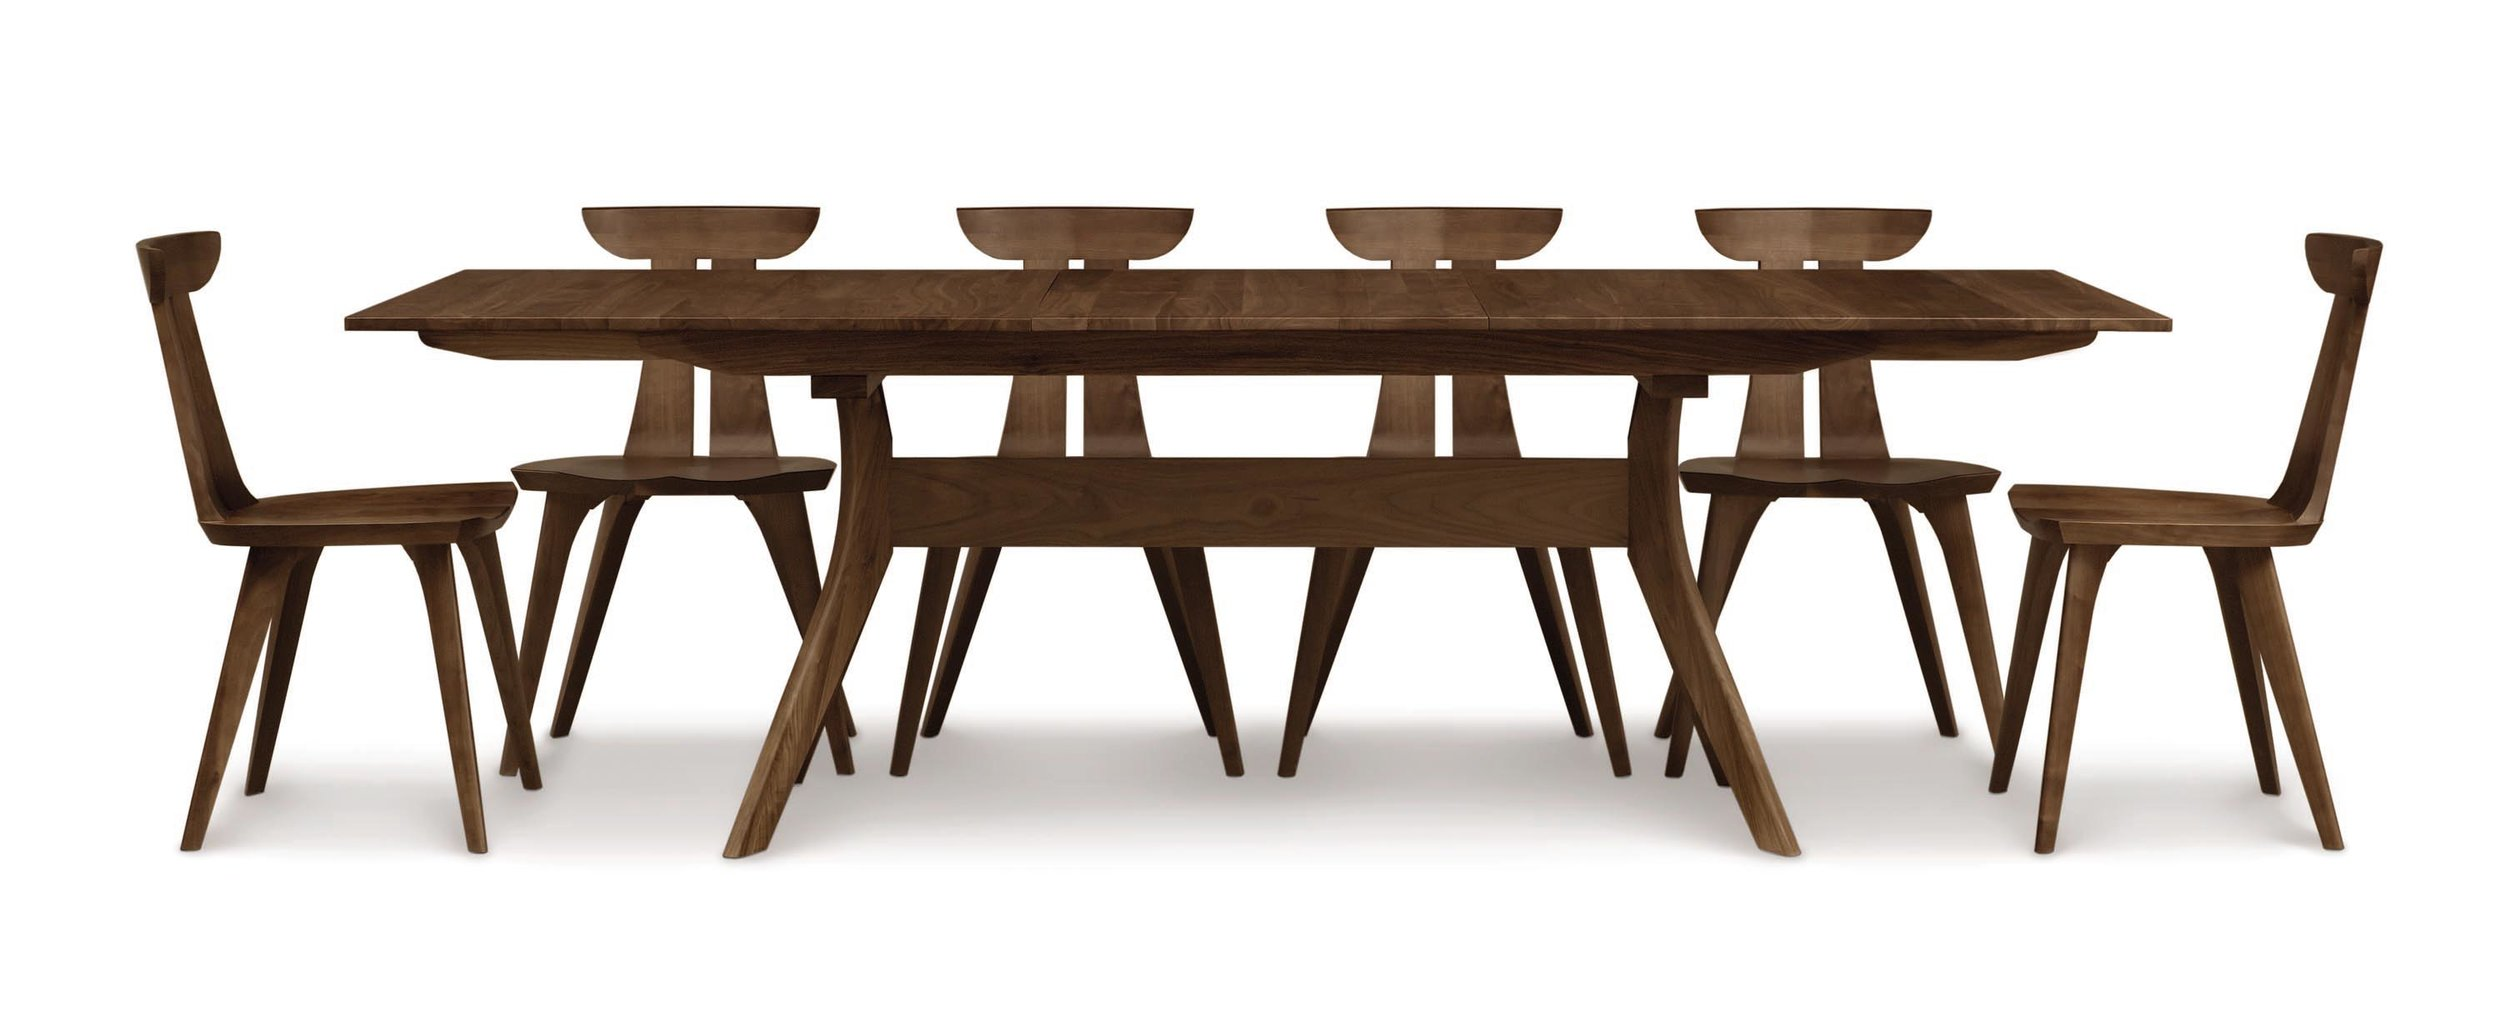 EWFmodern_ExtensionDiningTable_9008_high (5).jpg